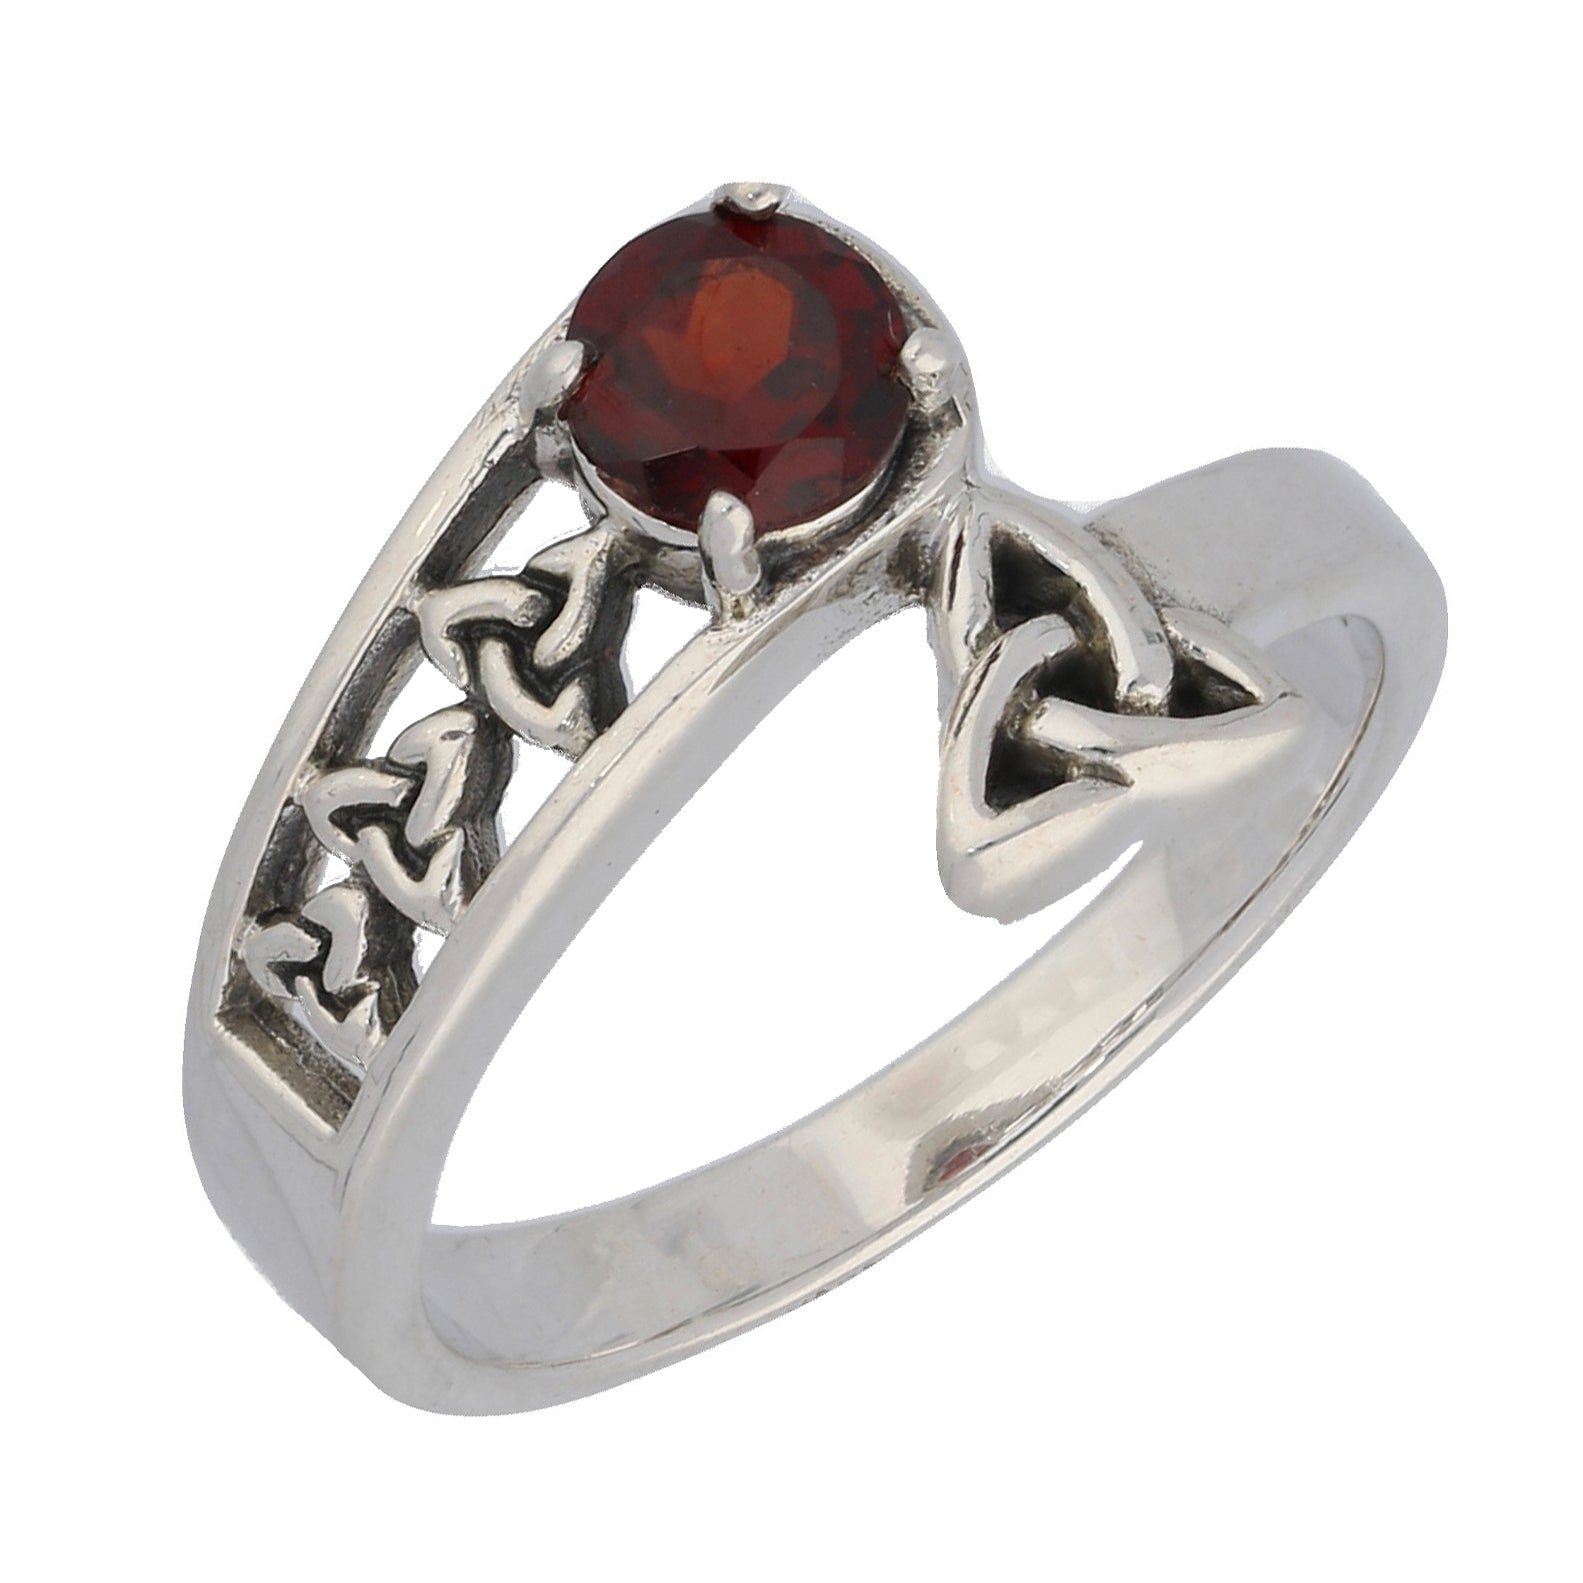 Triquetra Trinity Celtic Knot Garnet Sterling Silver Bypass Ring - Silver Insanity